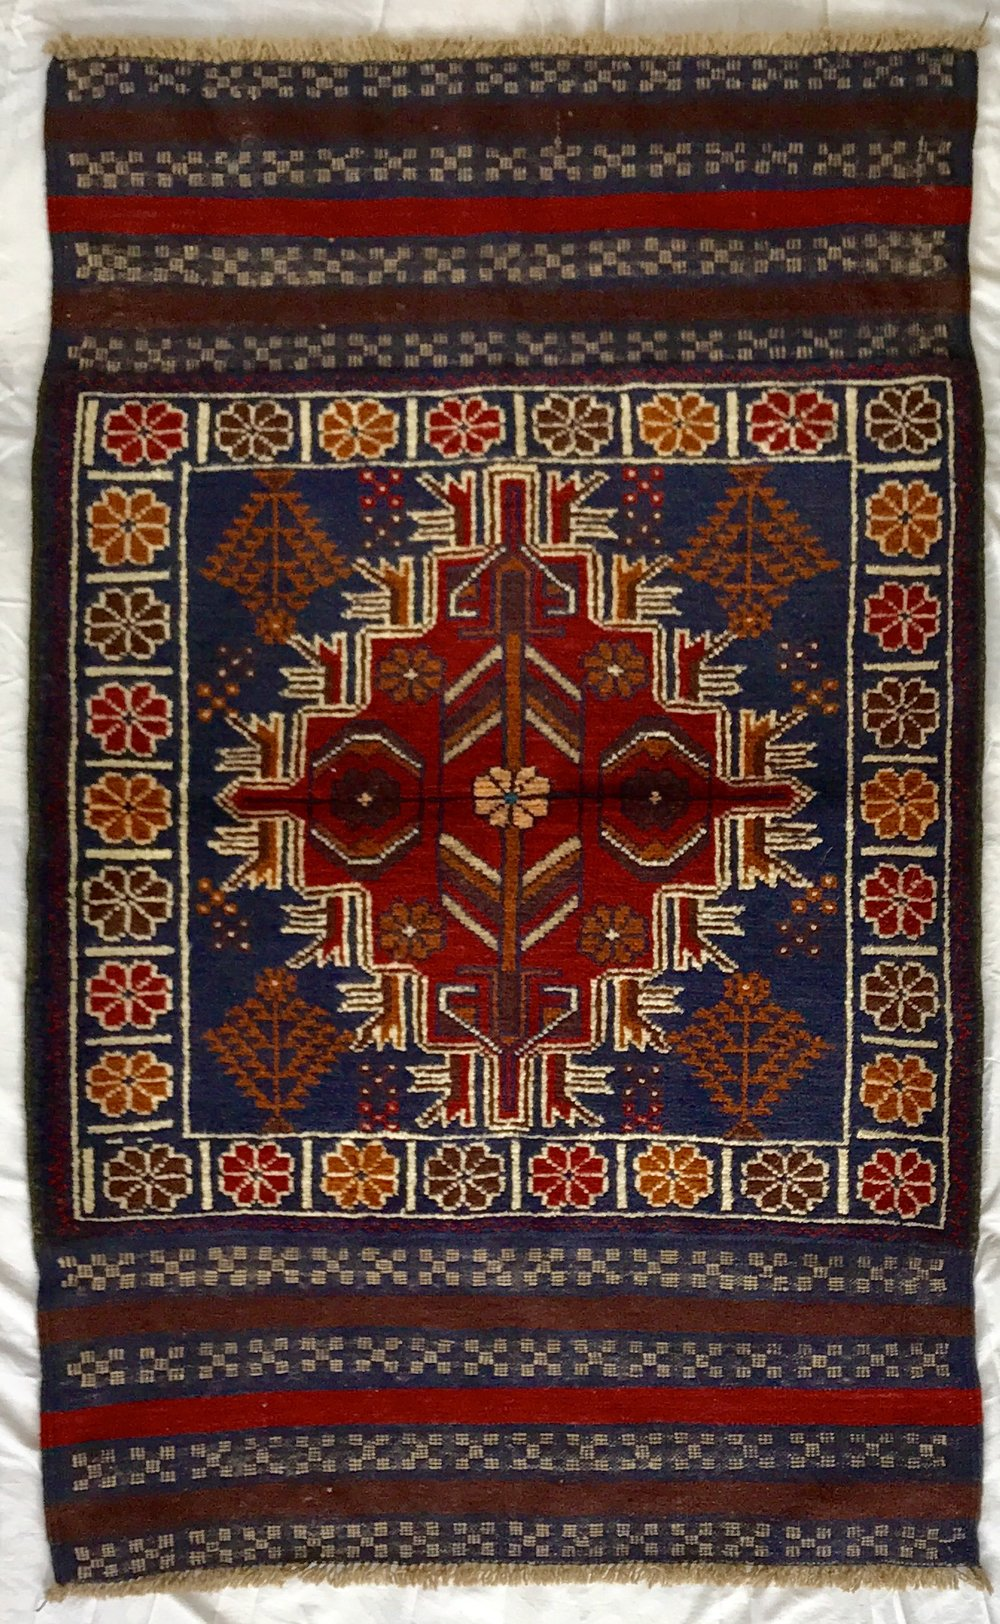 BALUCHI TRIBAL AFGHAN RUG - ORANGE (0.83X1.35)